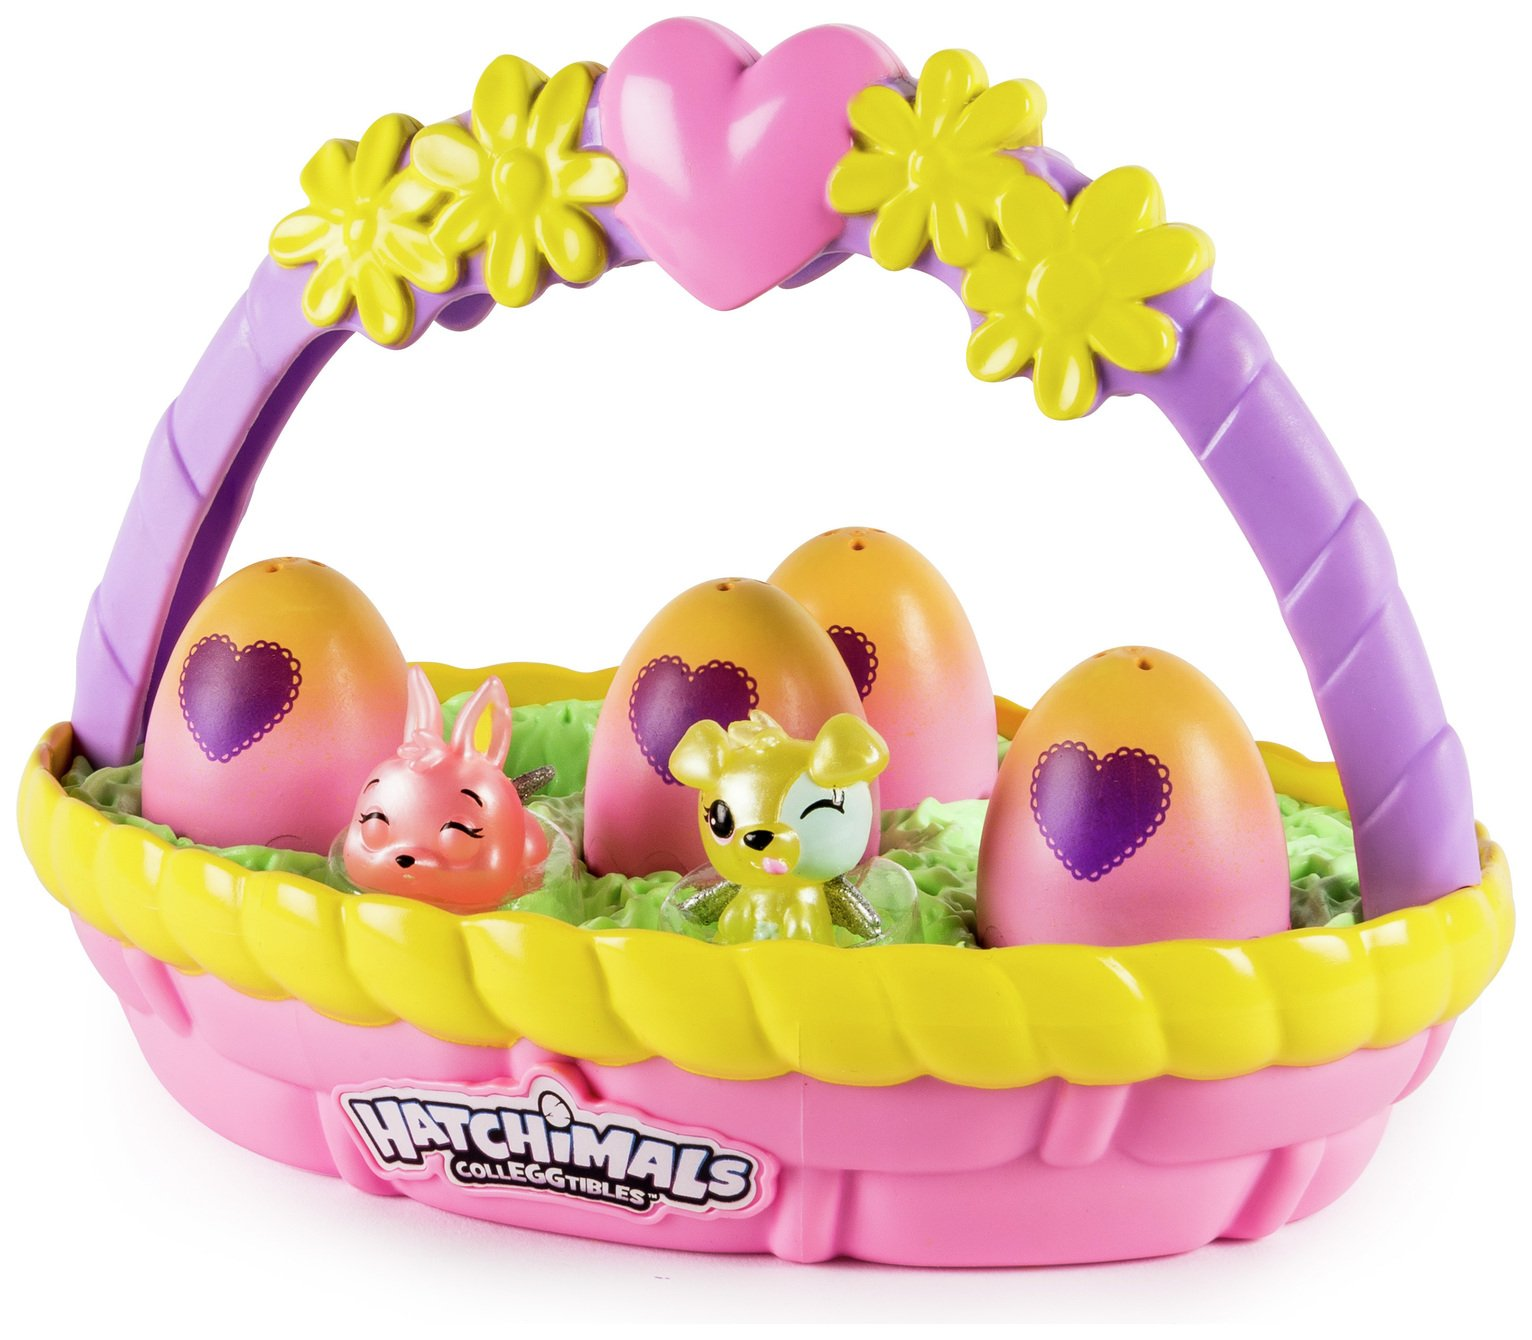 Hatchimals CollEGGtibles Spring Basket